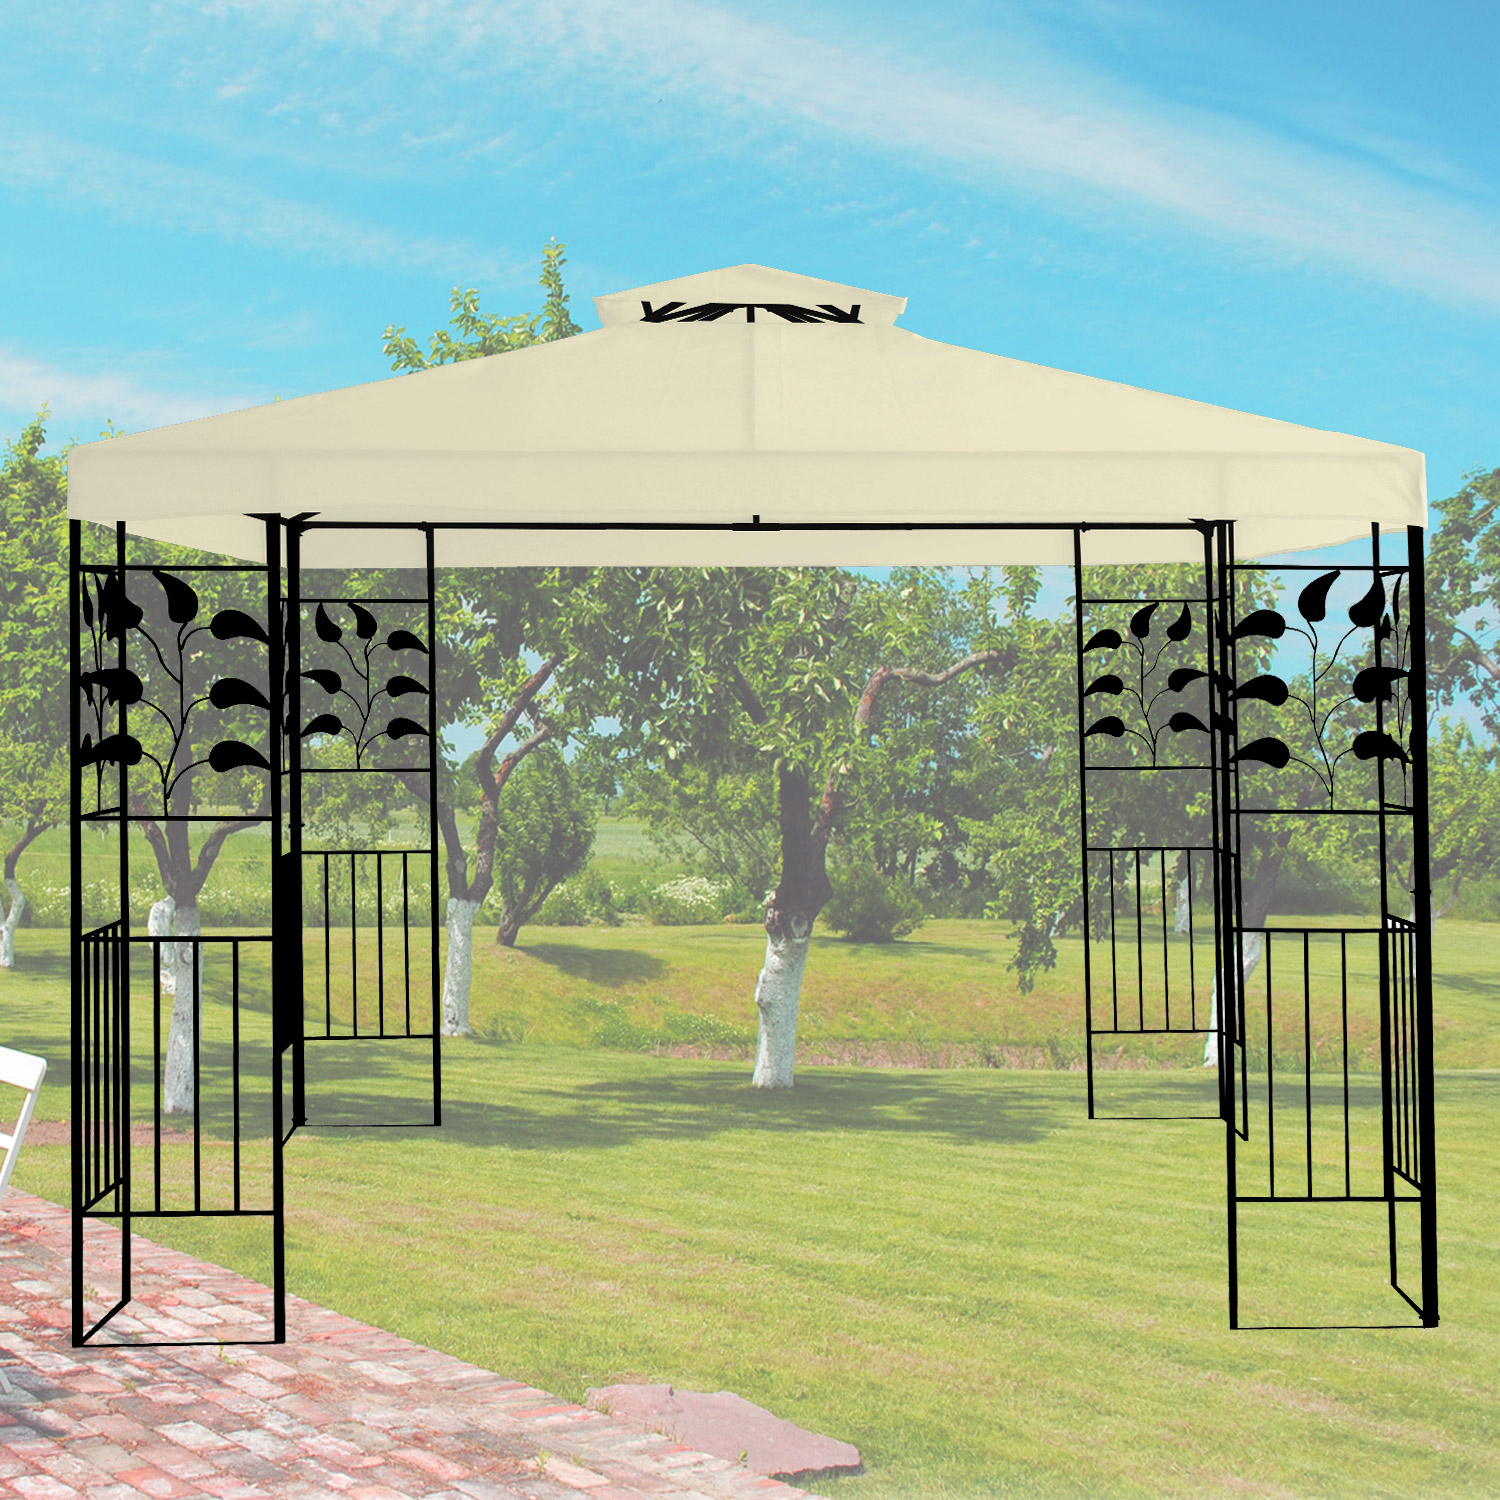 pavillon 3x3m metall gartenpavillon festzelt dach zelt. Black Bedroom Furniture Sets. Home Design Ideas